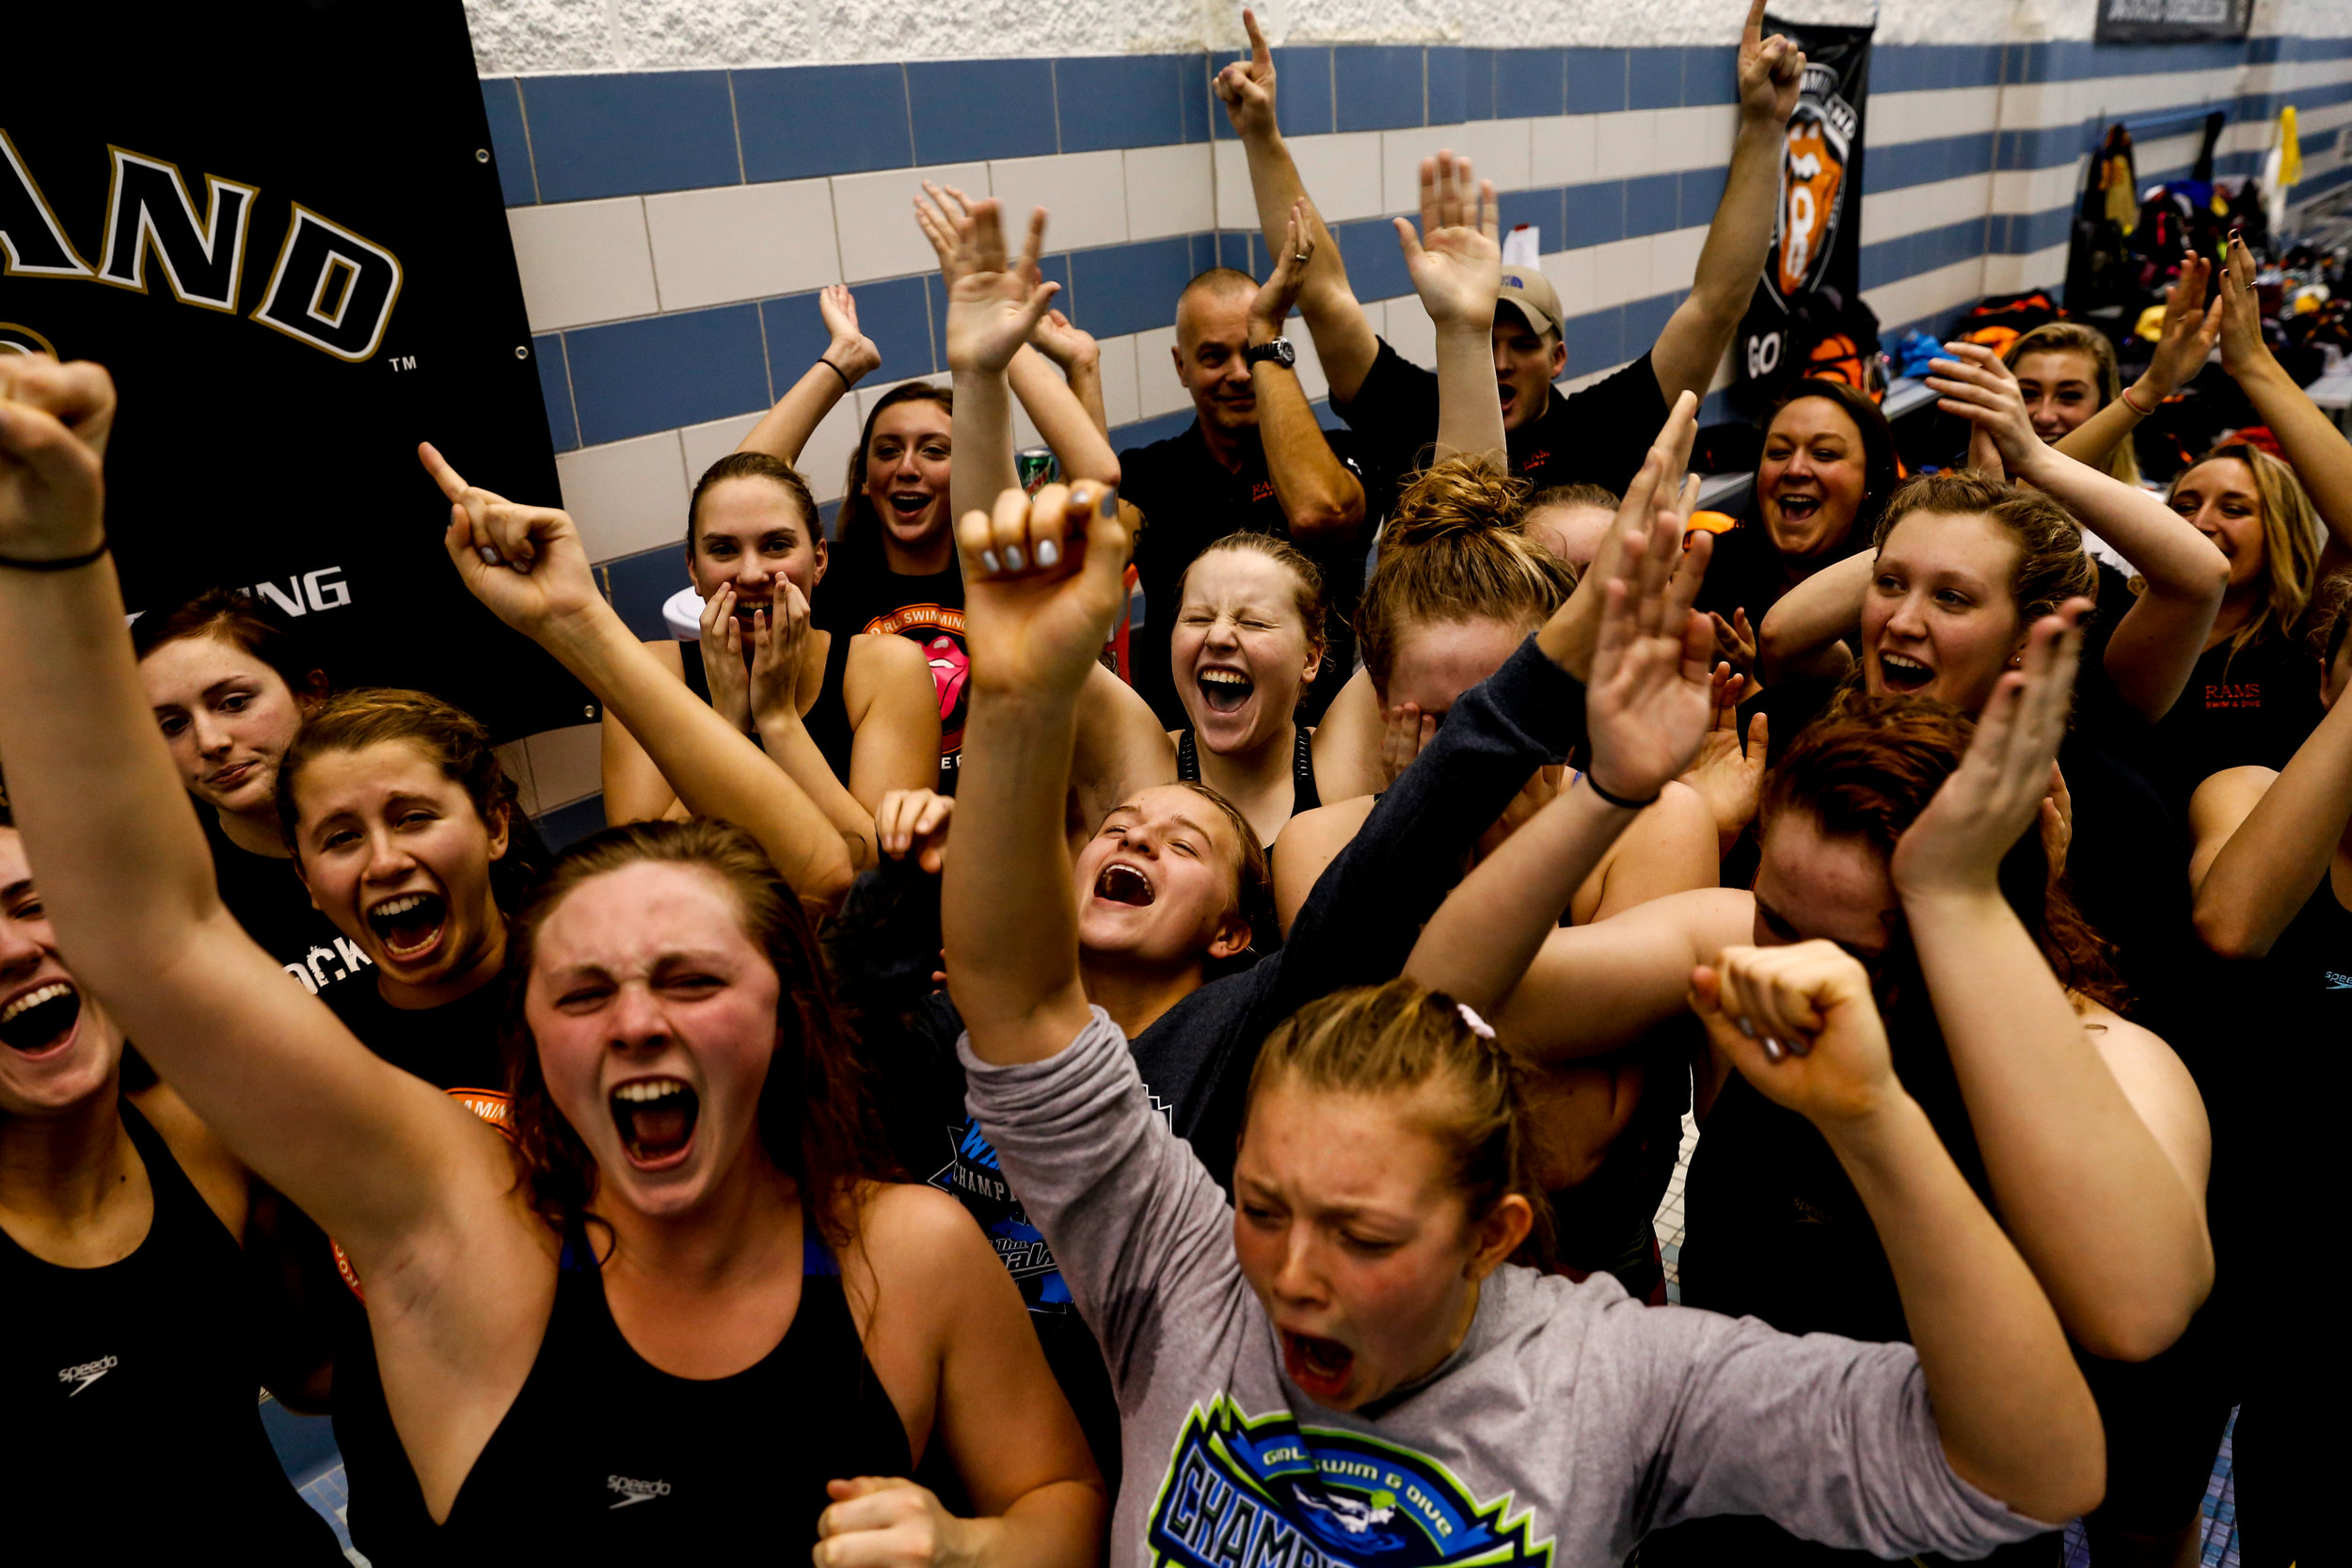 Rockford swimmers celebrate after being named the MHSAA D1 girls swimming champions on Saturday, Nov. 19, 2016 at Oakland University in Rochester.